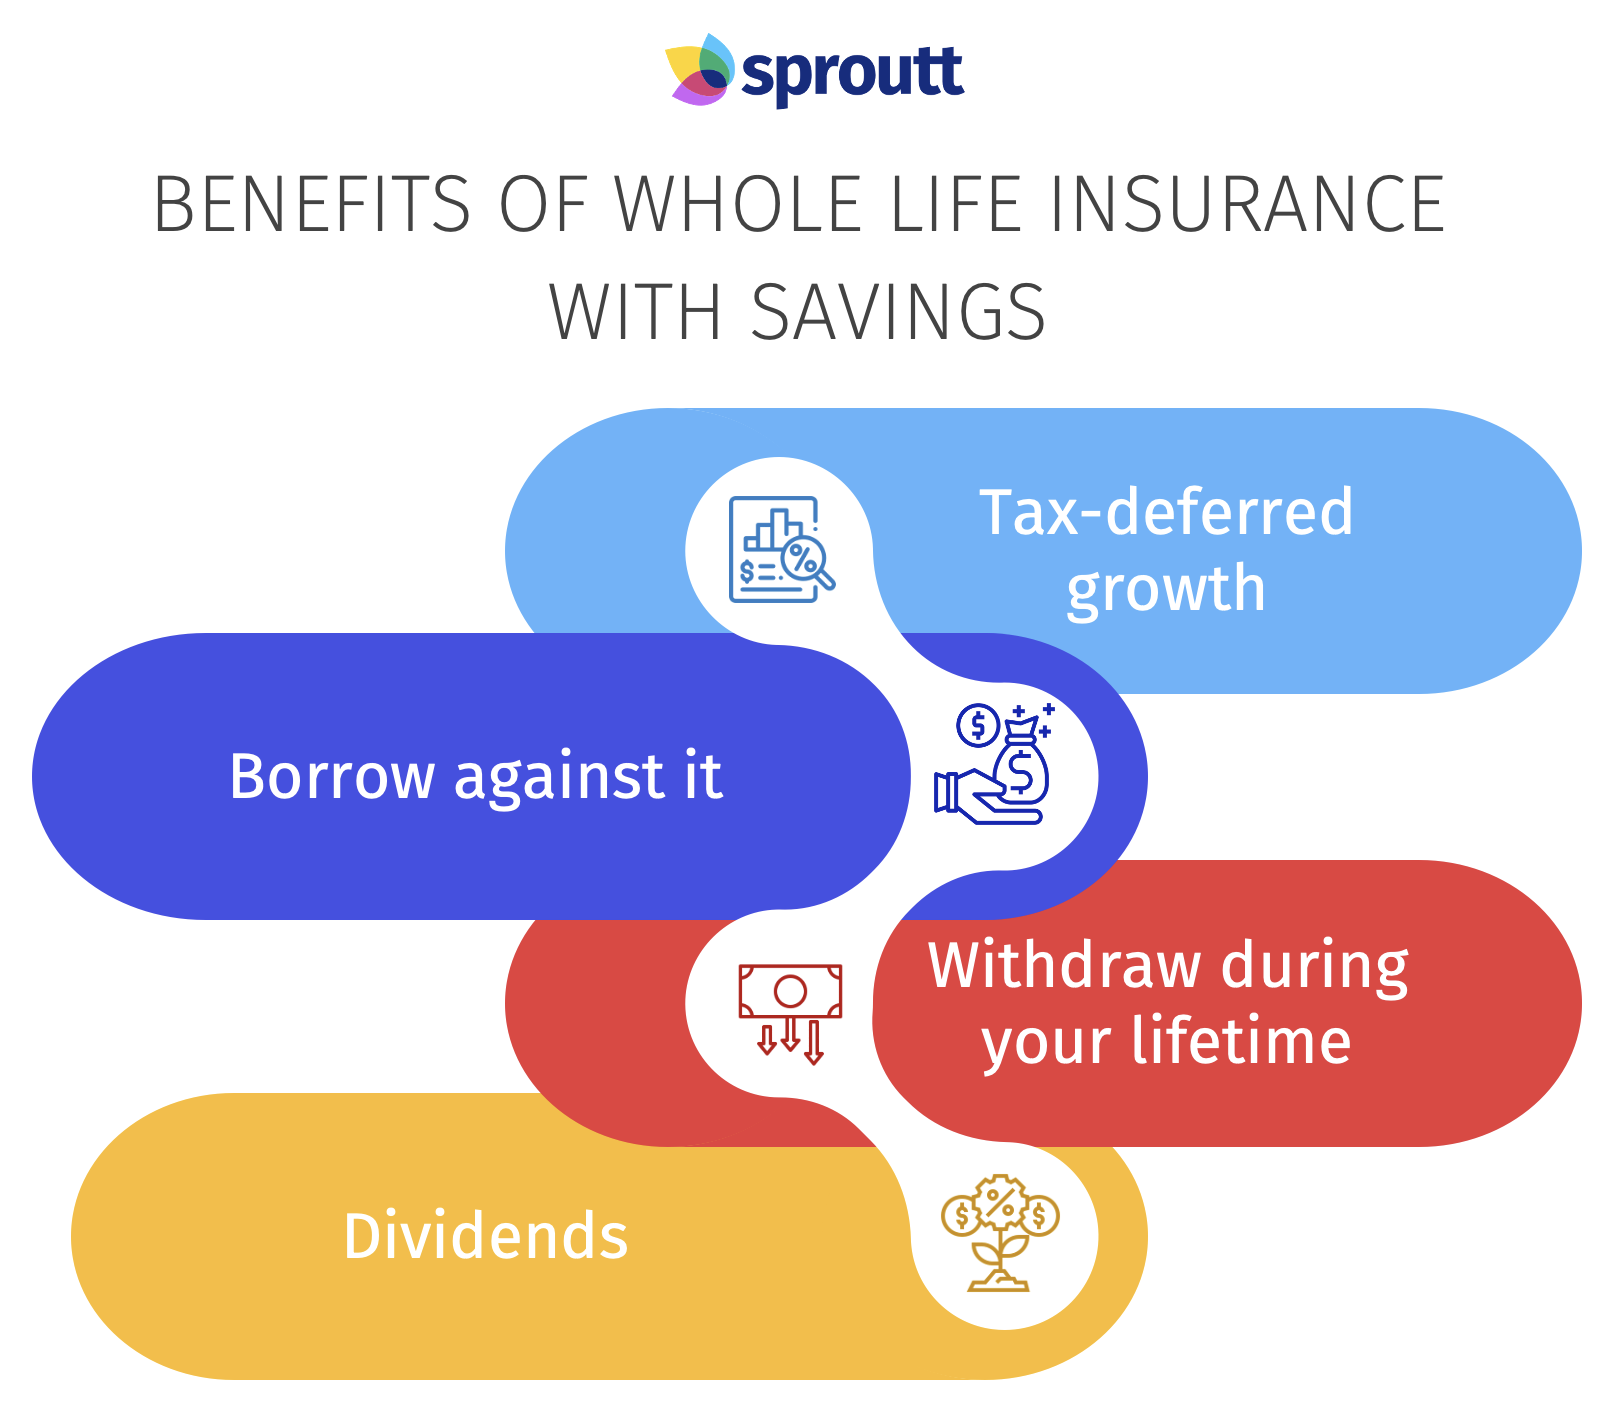 Benefits of whole life insurance with savings - infographic